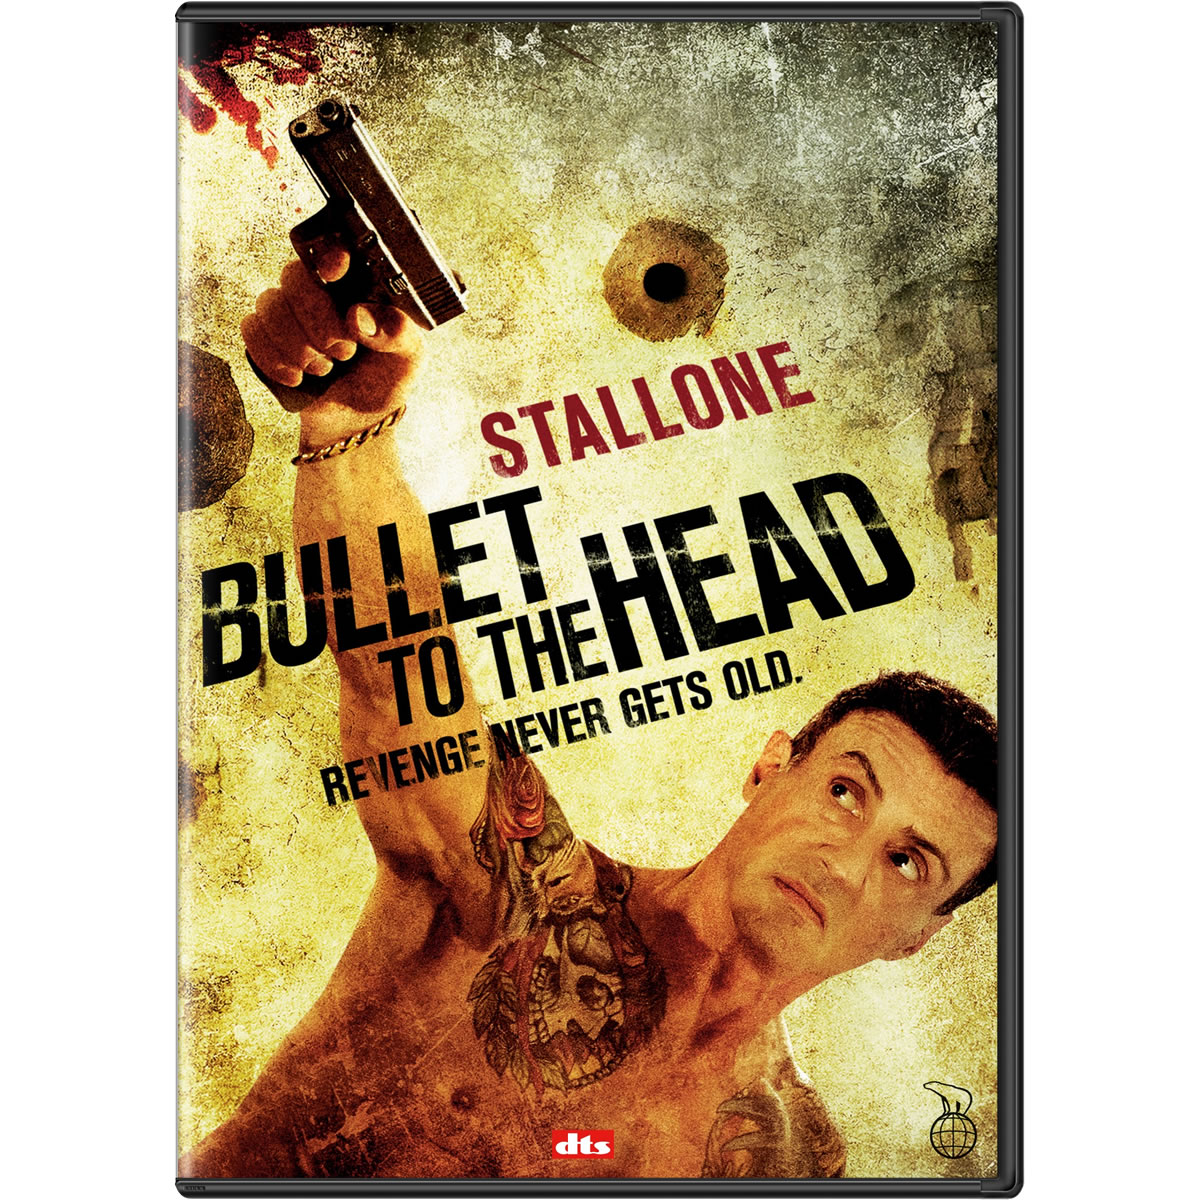 BULLET TO THE HEAD - ΜΙΑ ΣΦΑΙΡΑ ΣΤΟ ΚΕΦΑΛΙ (DVD)